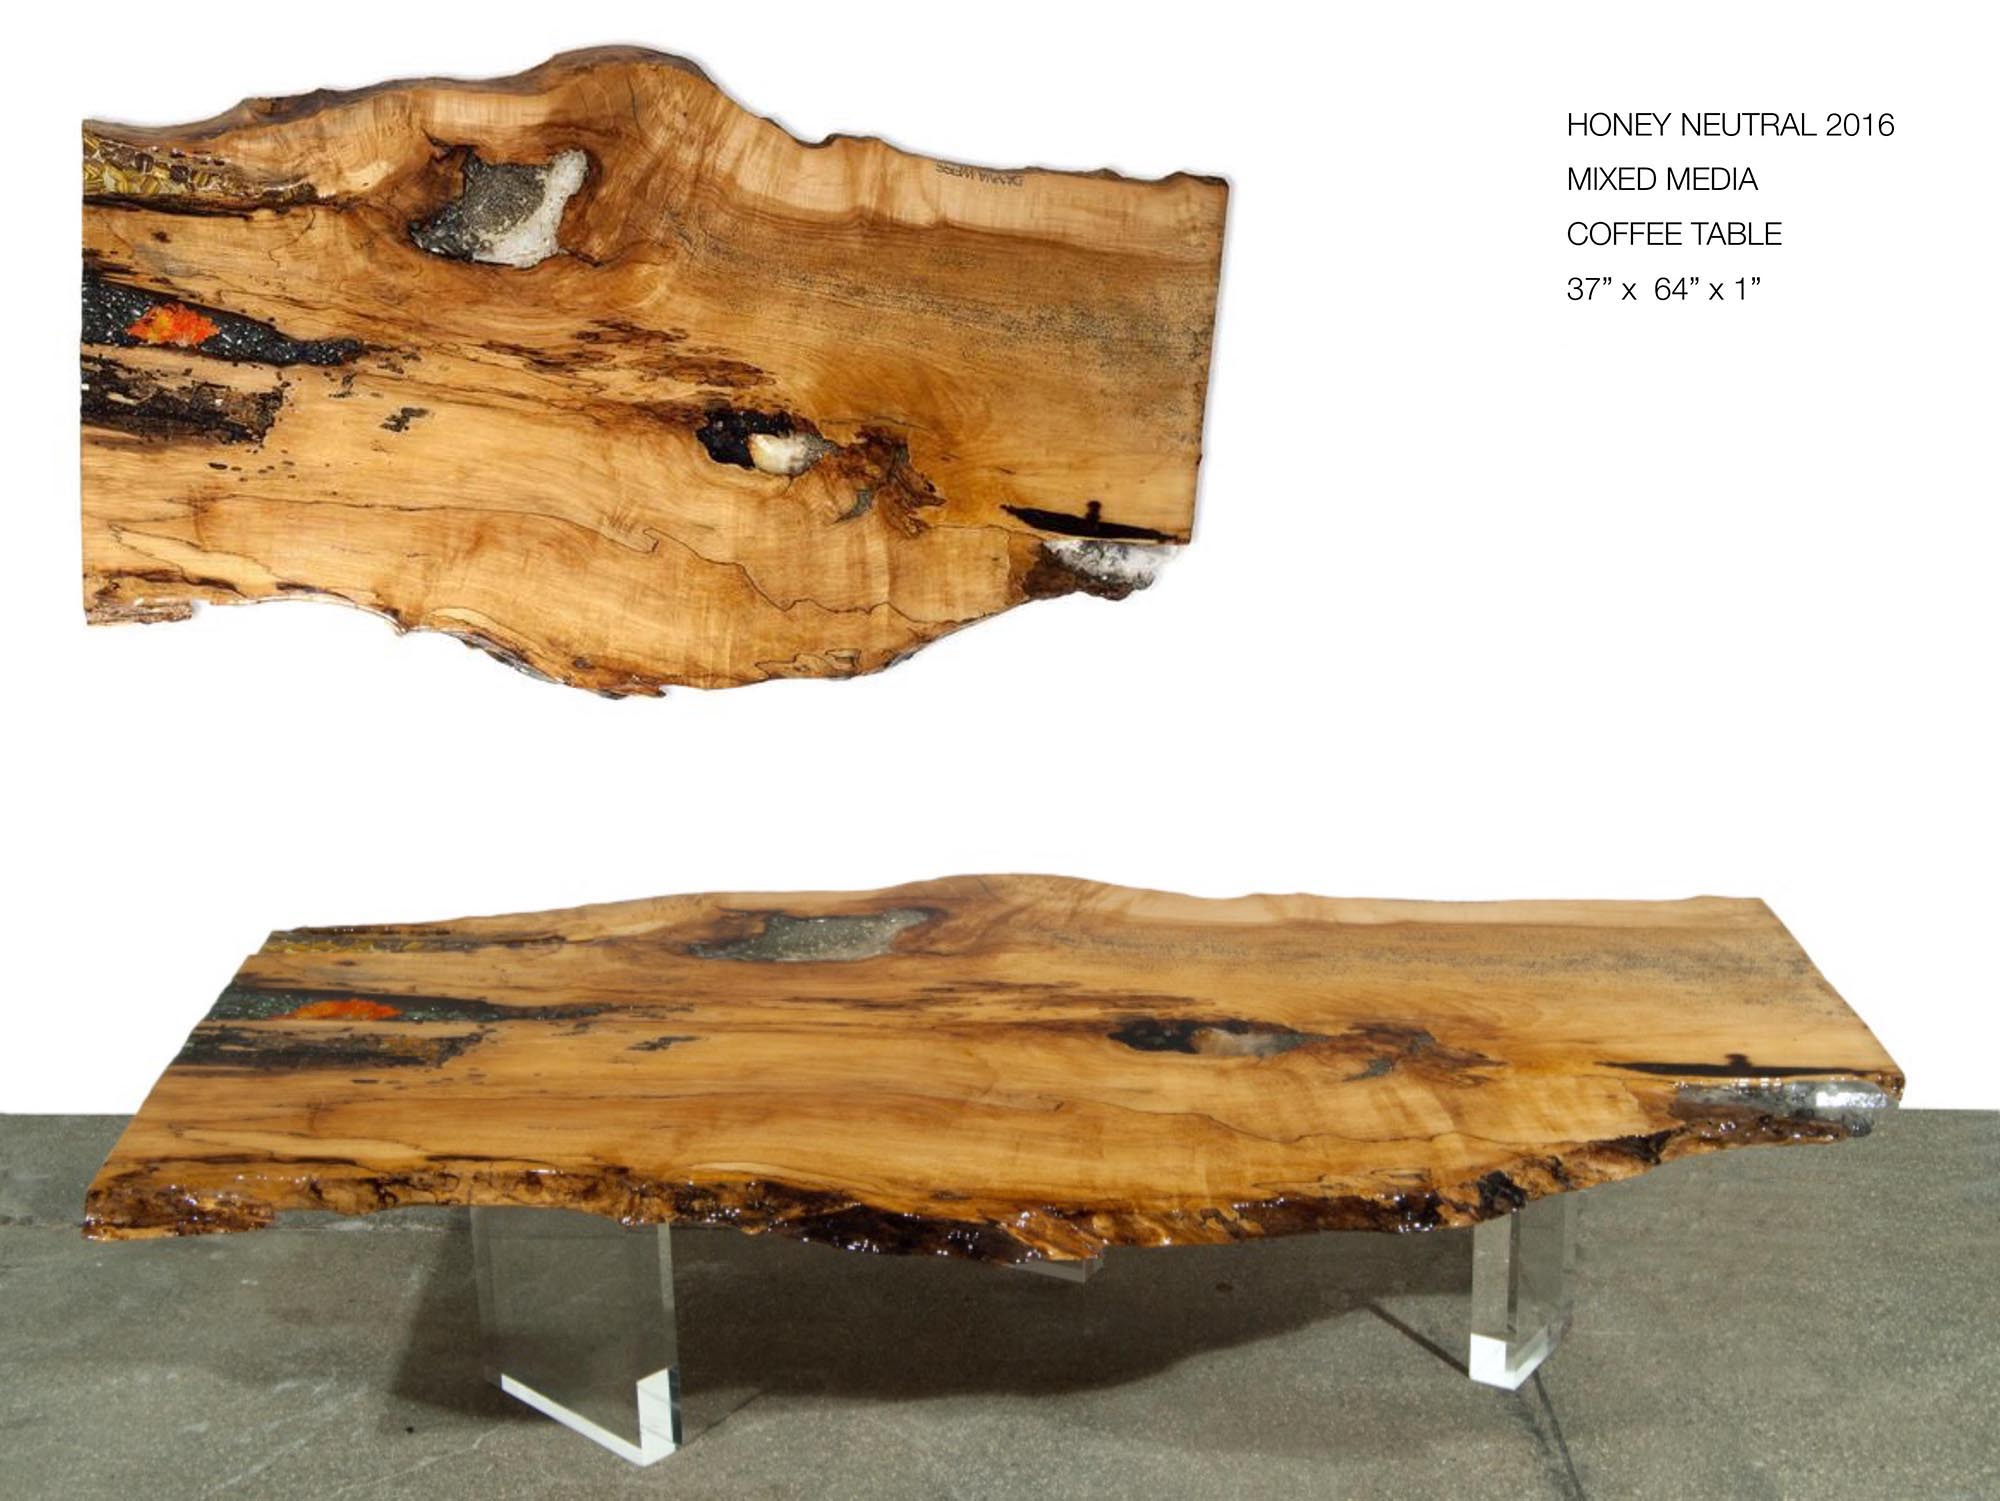 Honey Neutral 2016 Coffee Table